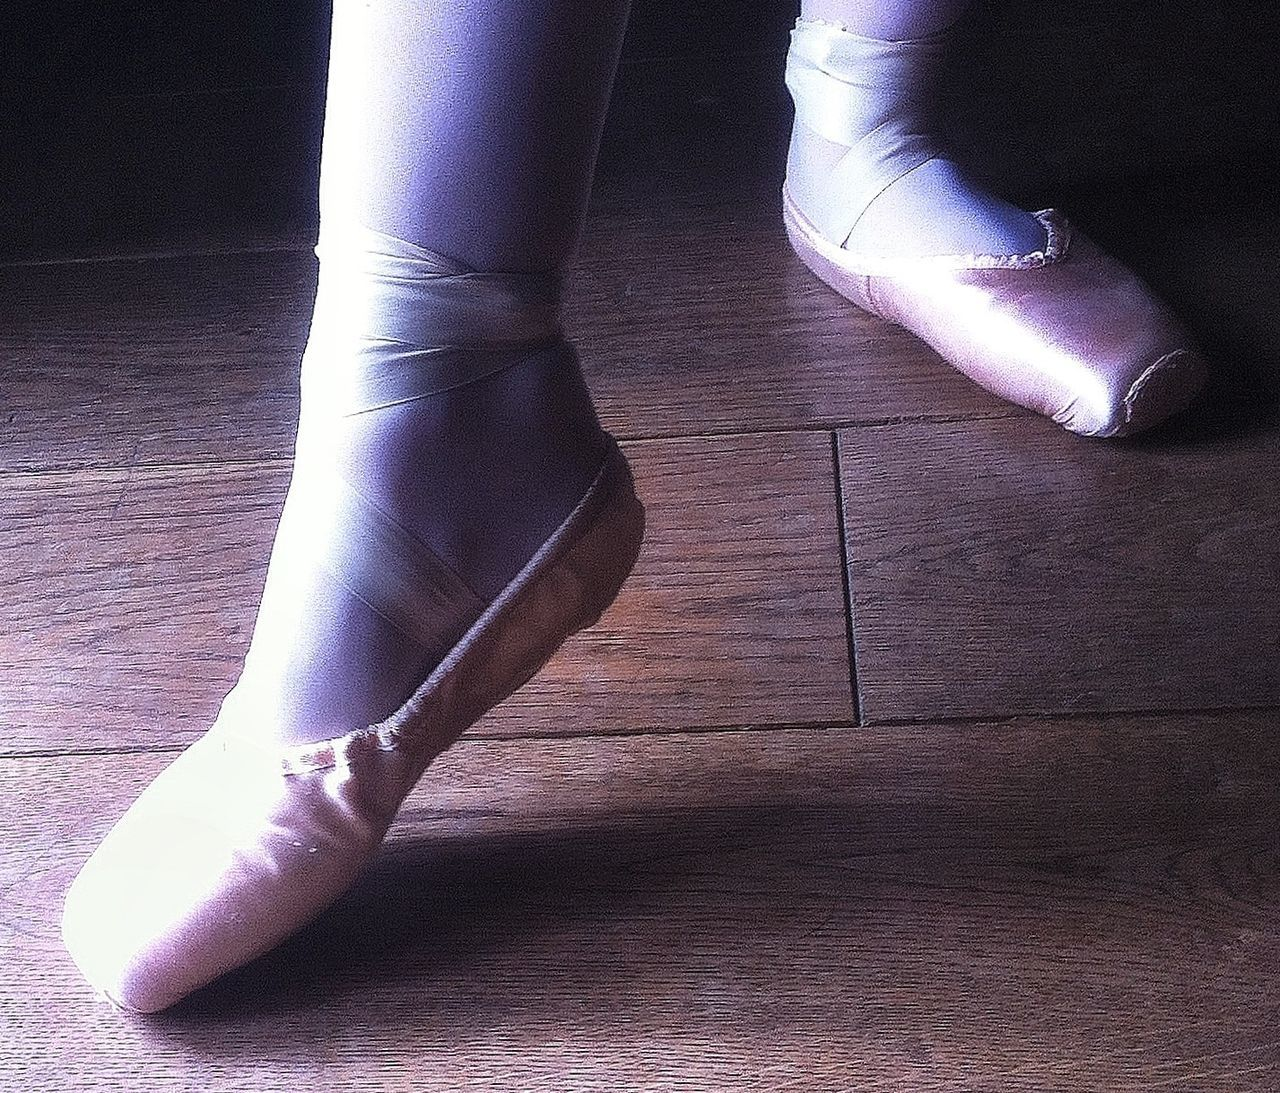 low section, human leg, ballet, indoors, flooring, ballet dancer, hardwood floor, real people, practicing, balance, one person, flexibility, skill, human body part, close-up, ballet studio, day, people